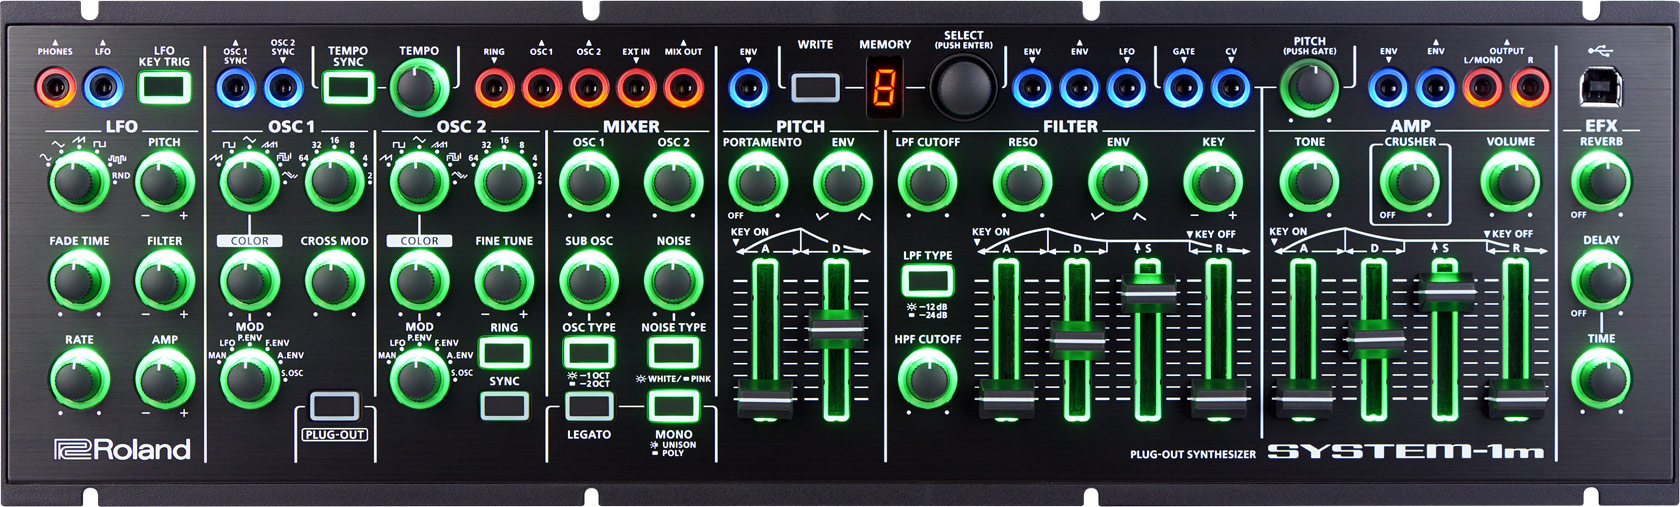 SYSTEM-1m | PLUG-OUT Synthesizer - Roland